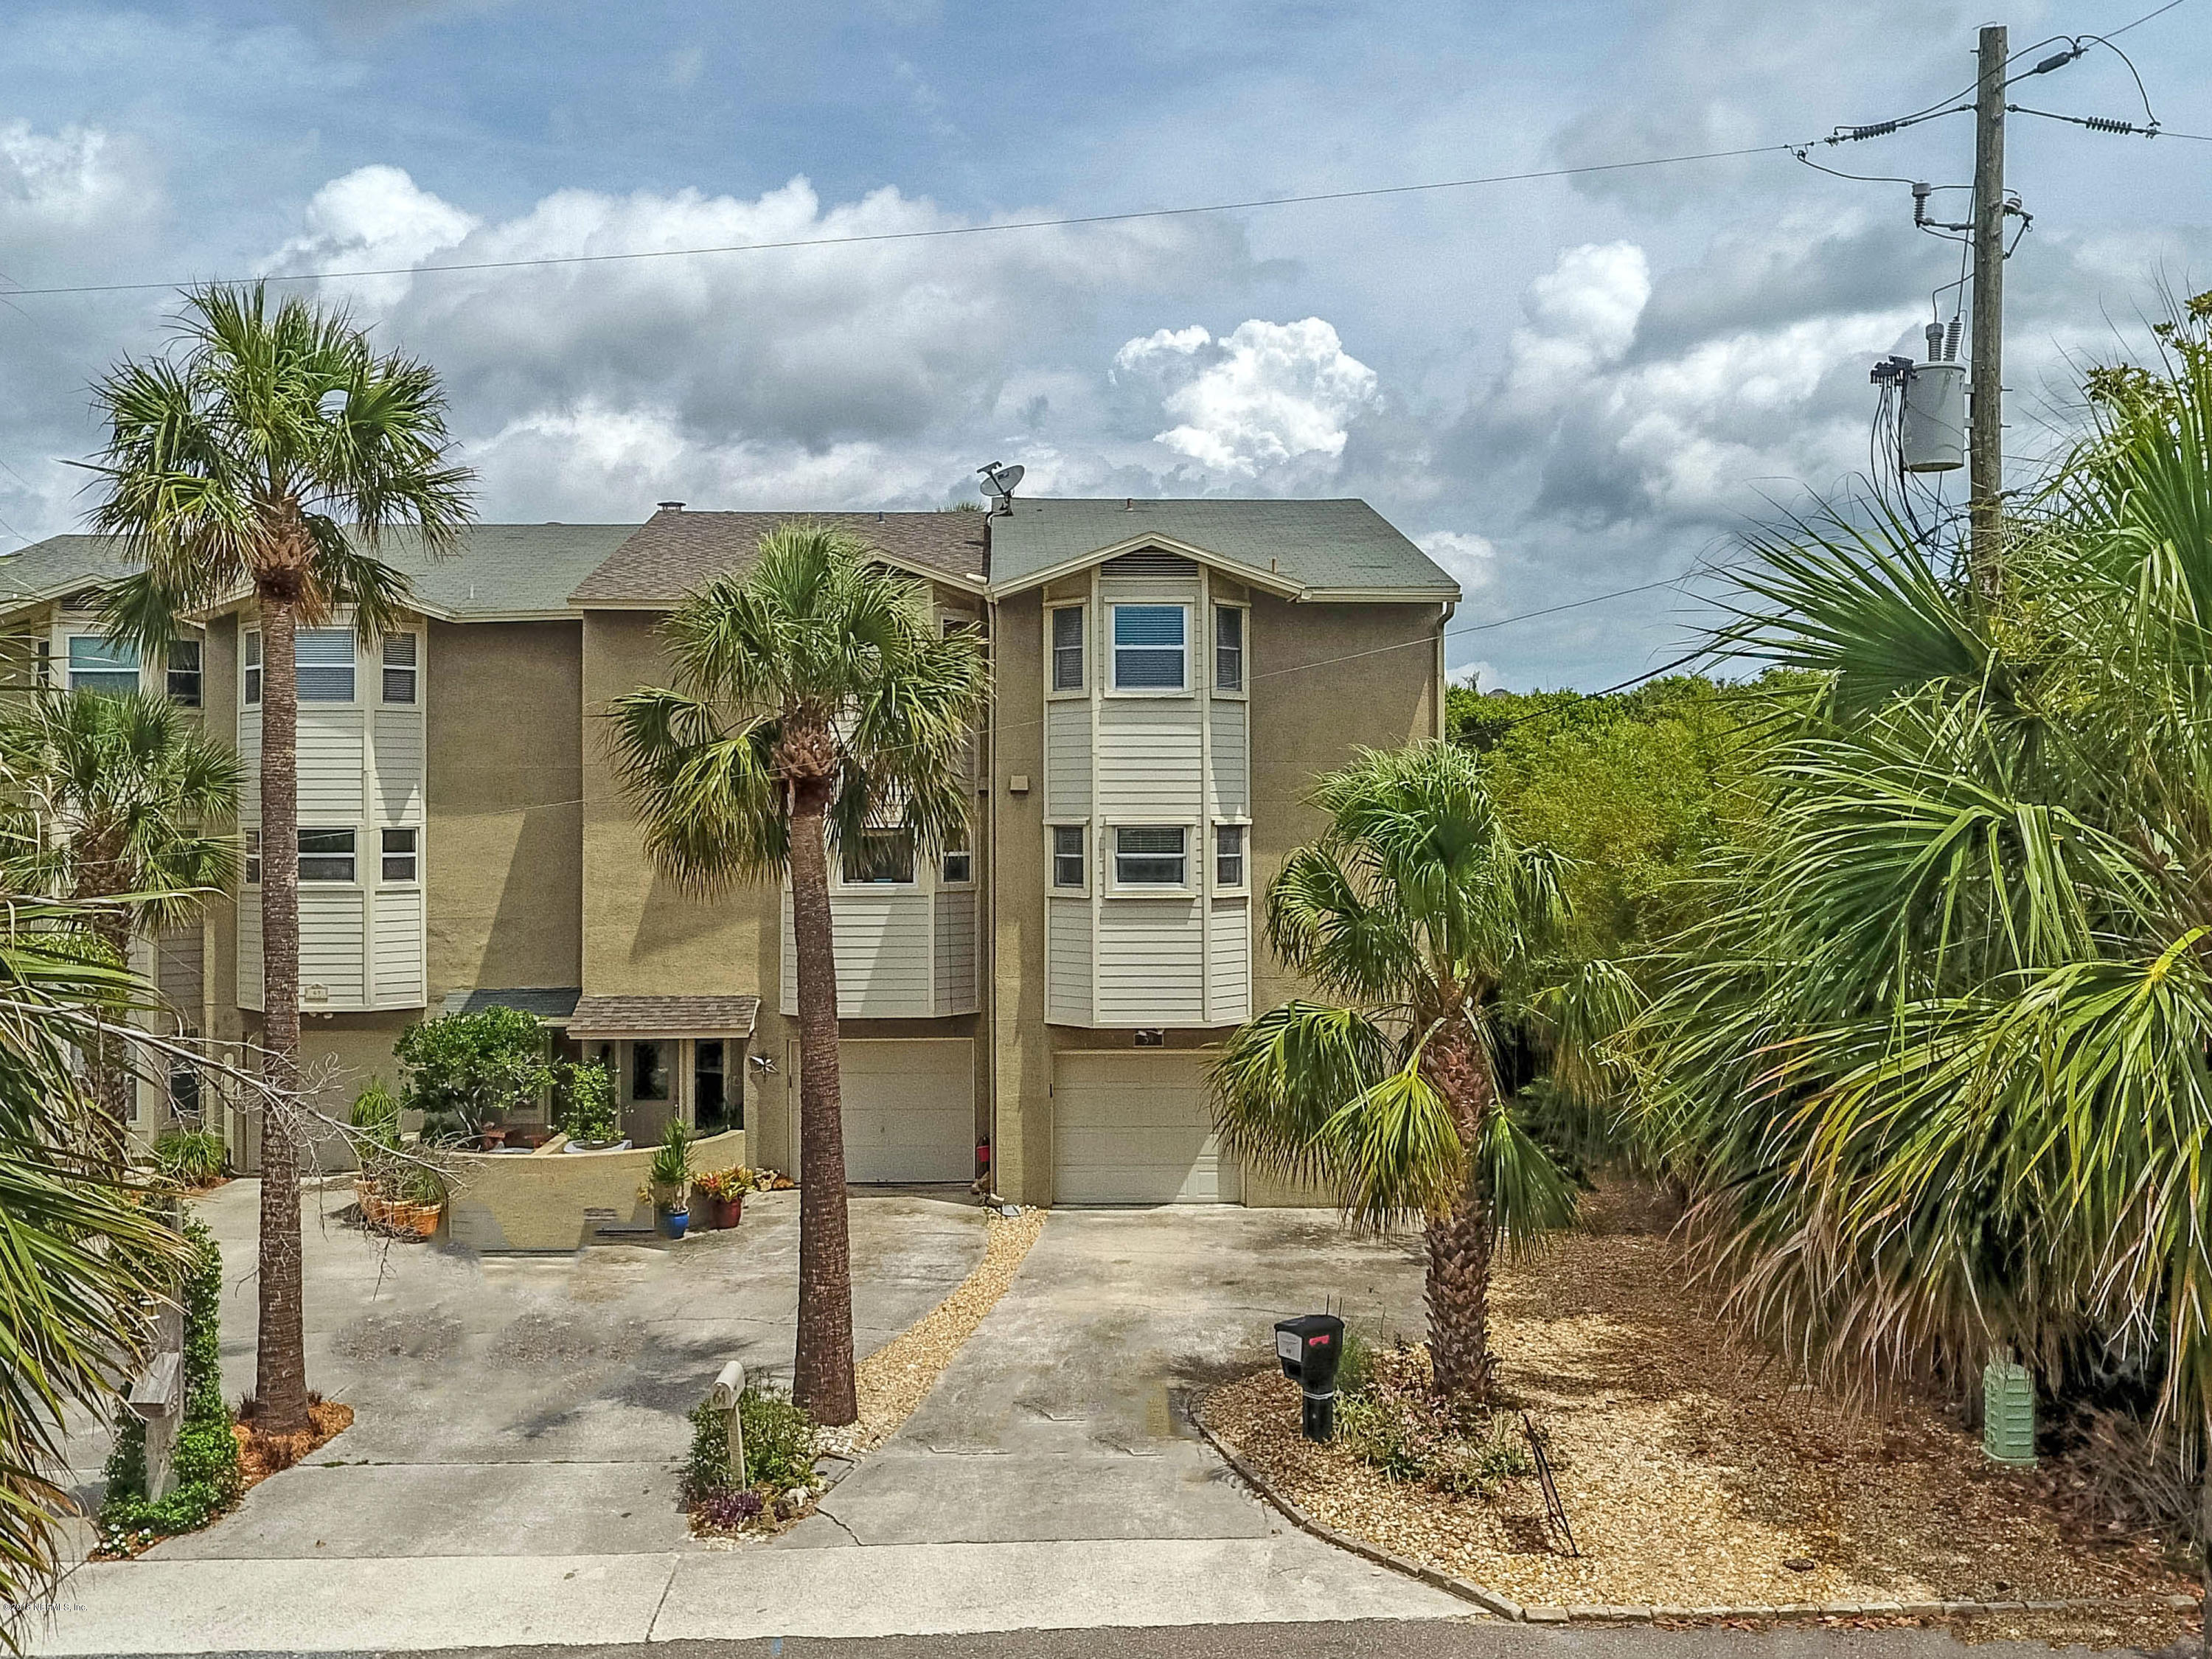 59 CORAL, ATLANTIC BEACH, FLORIDA 32233, 3 Bedrooms Bedrooms, ,3 BathroomsBathrooms,Residential - townhome,For sale,CORAL,1009029